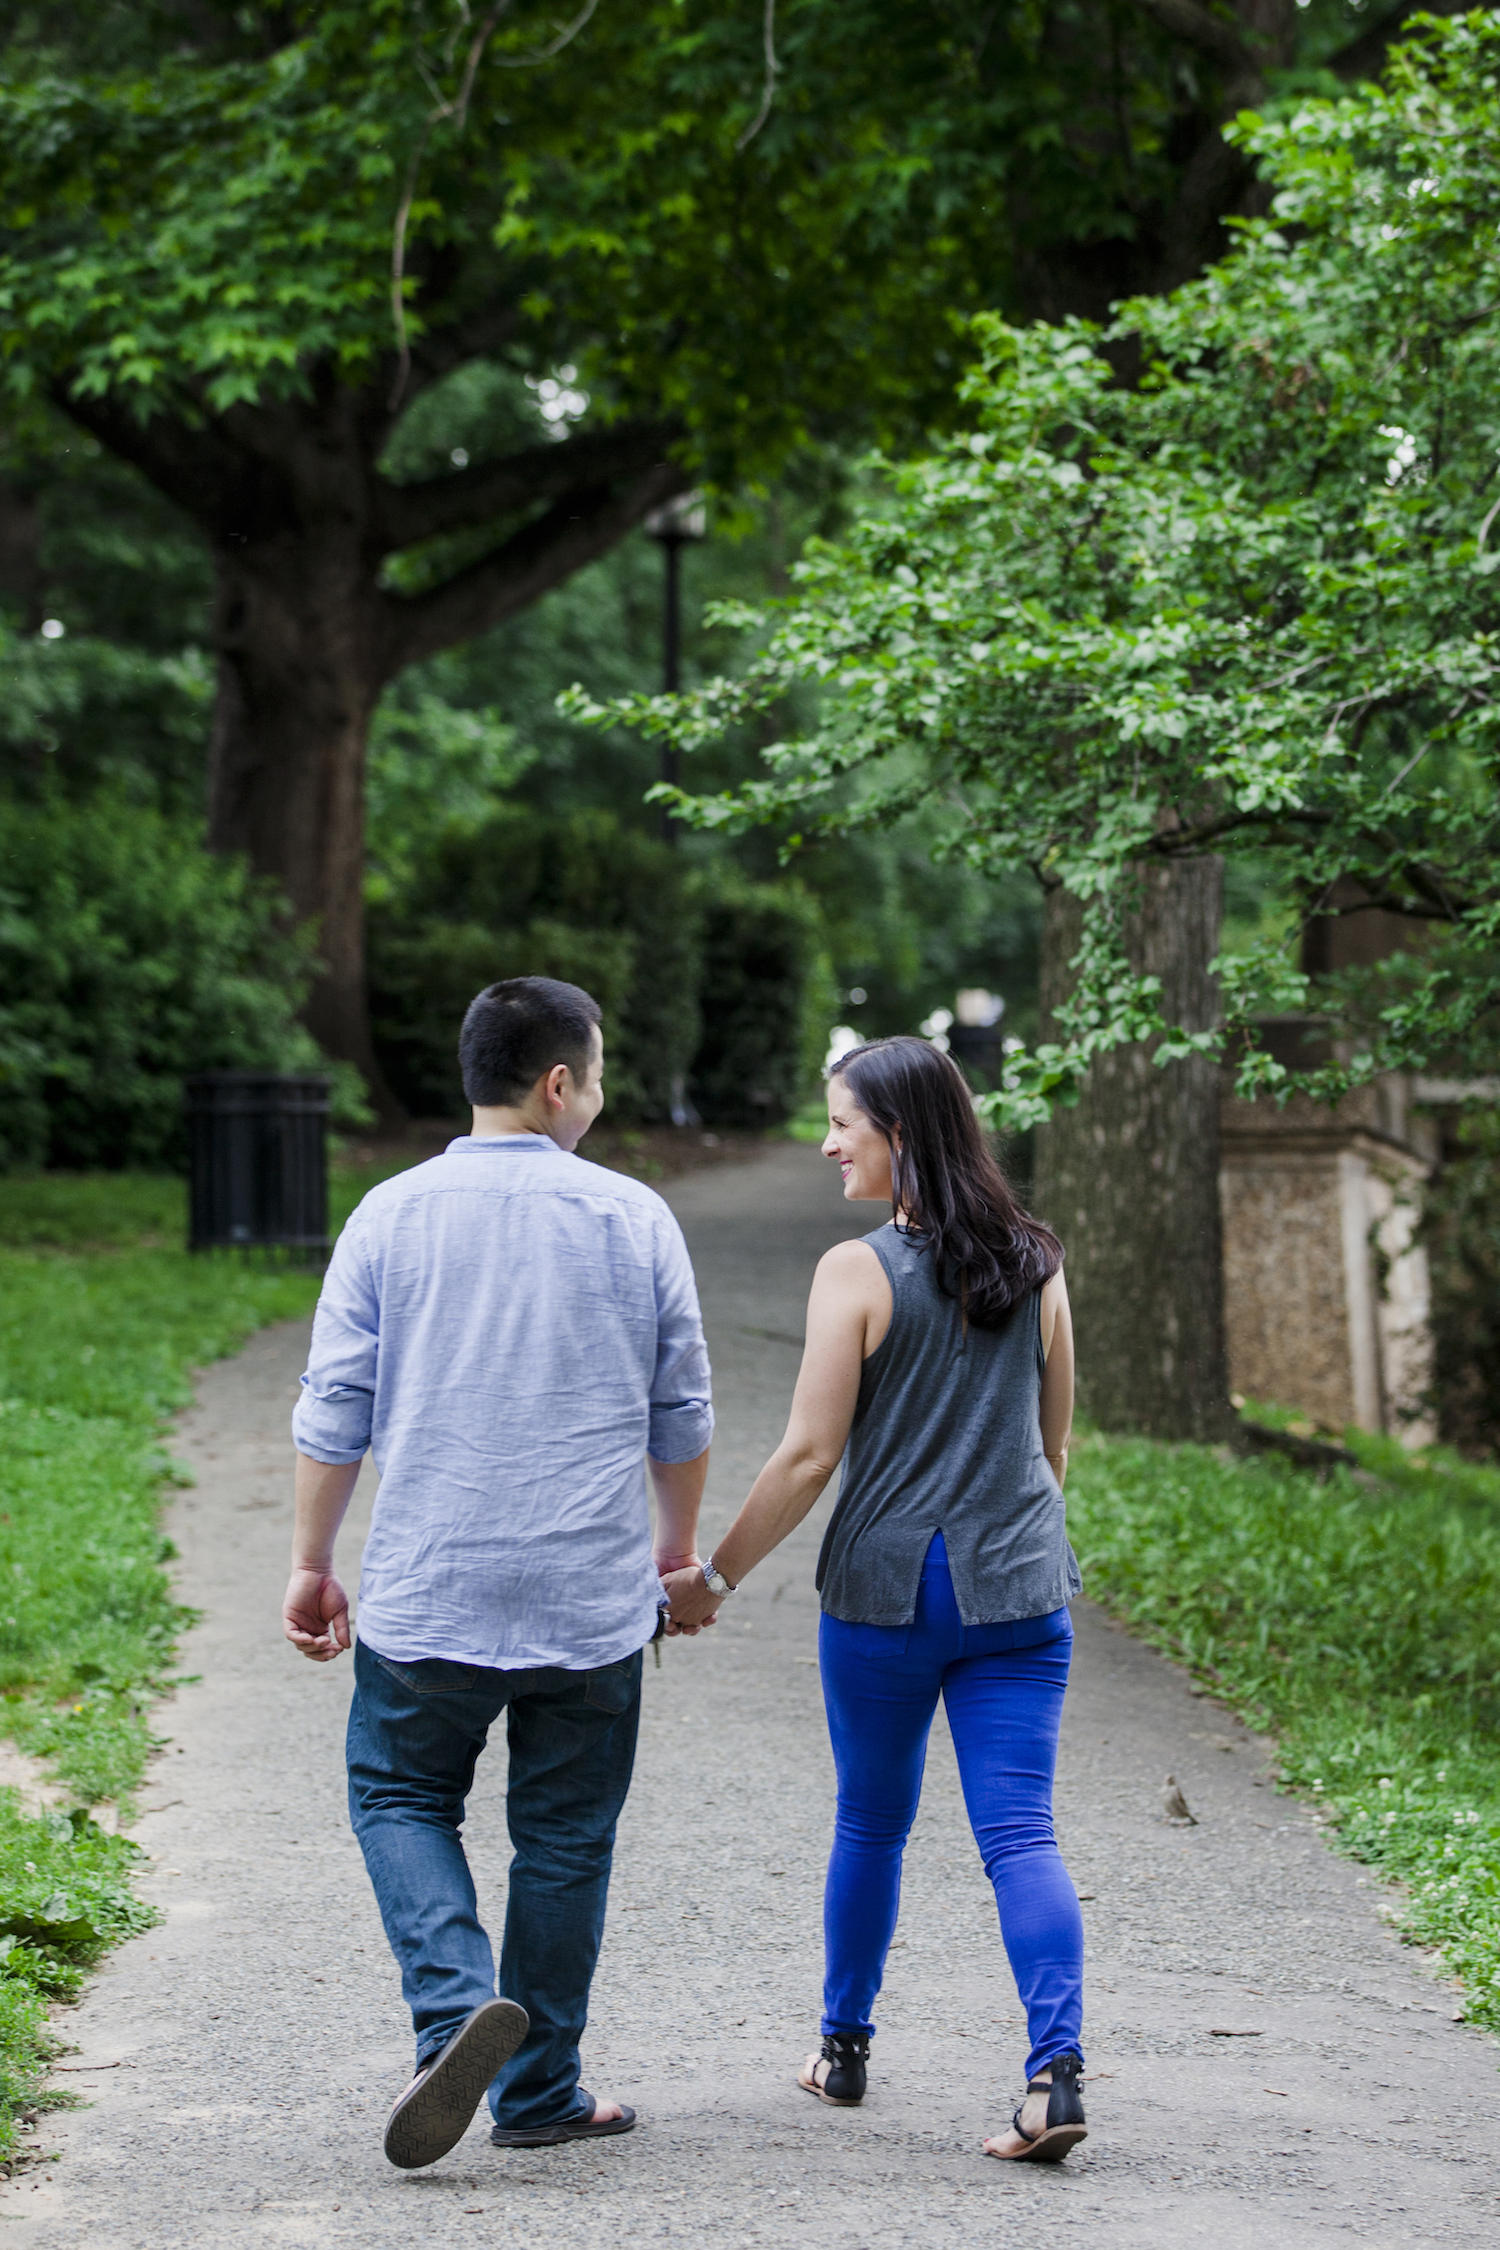 Washington DC Meridian Hill Park Engagement Shoot with Lillie Elliot Photography and Sincerely Pete Events